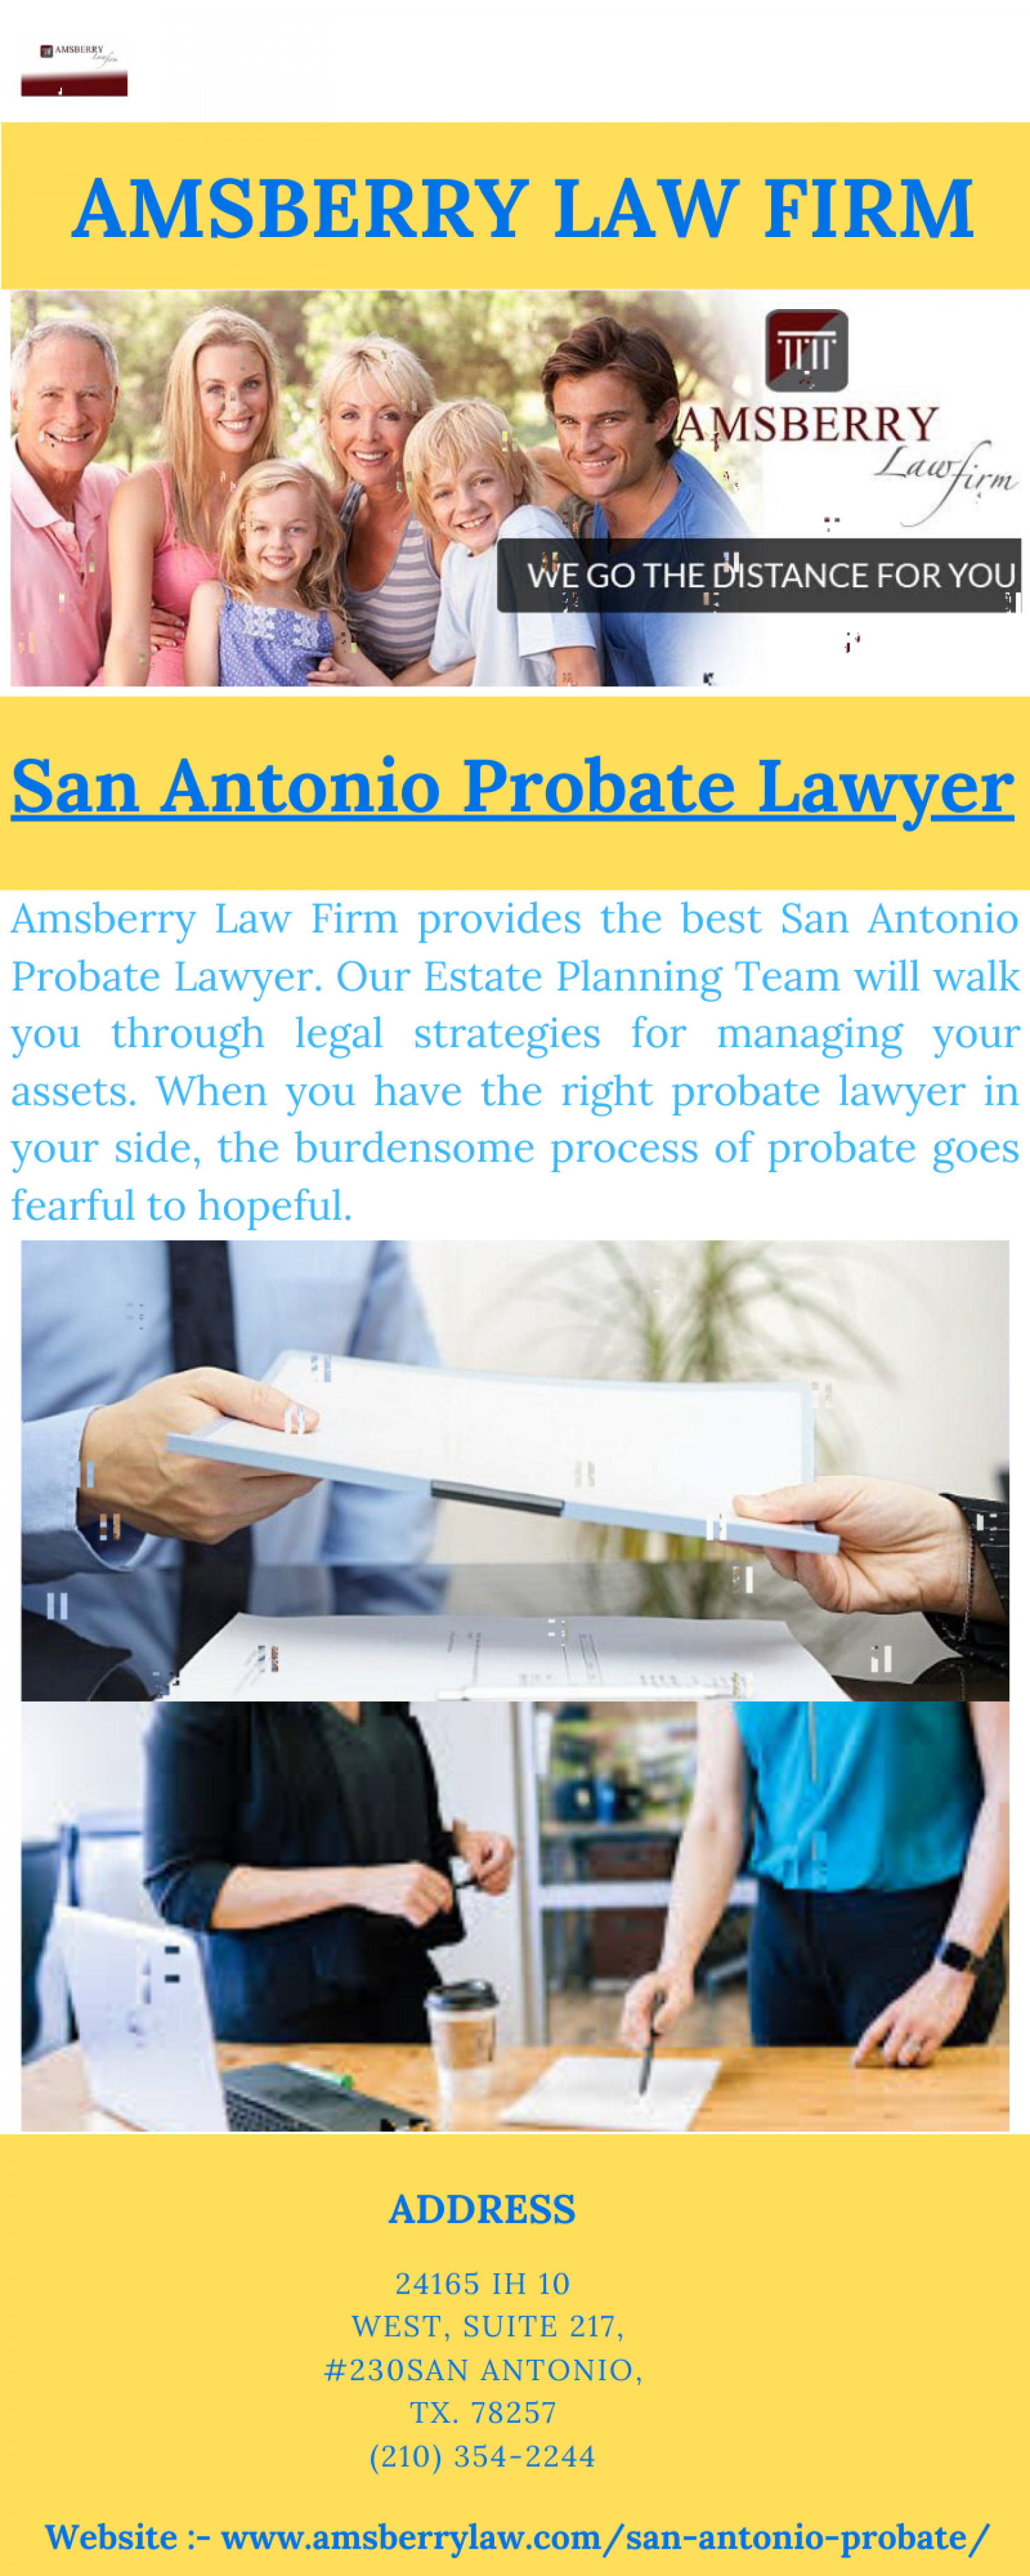 San Antonio Probate Lawyer Infographic